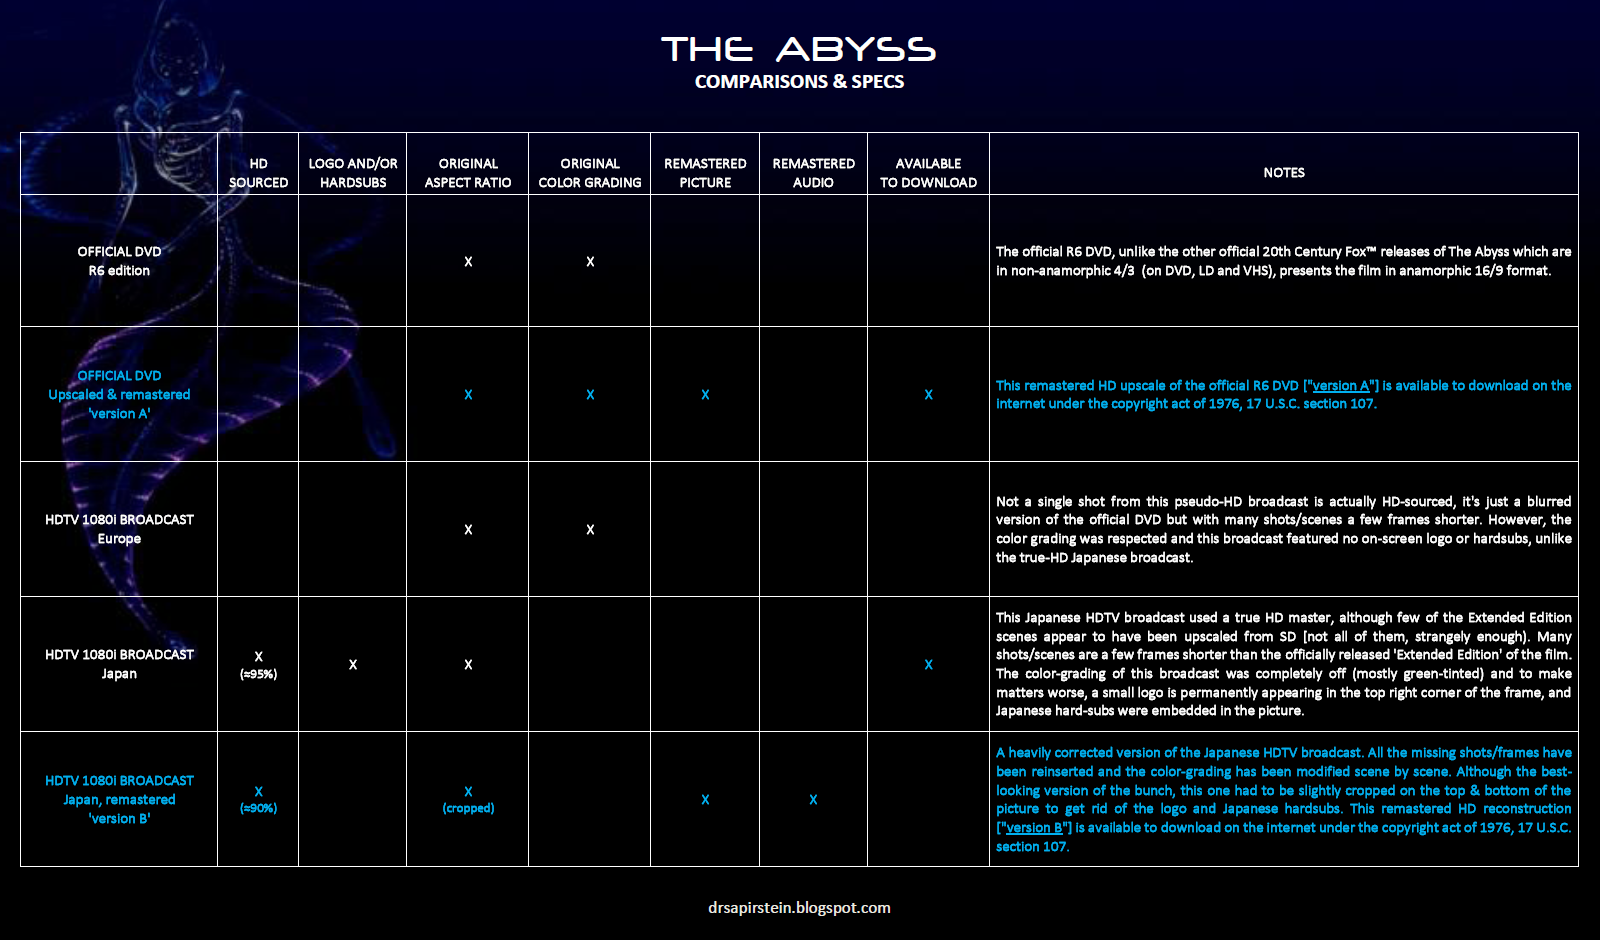 The Abyss - Special Edition (1989) BluRay Project *BD-50* x2